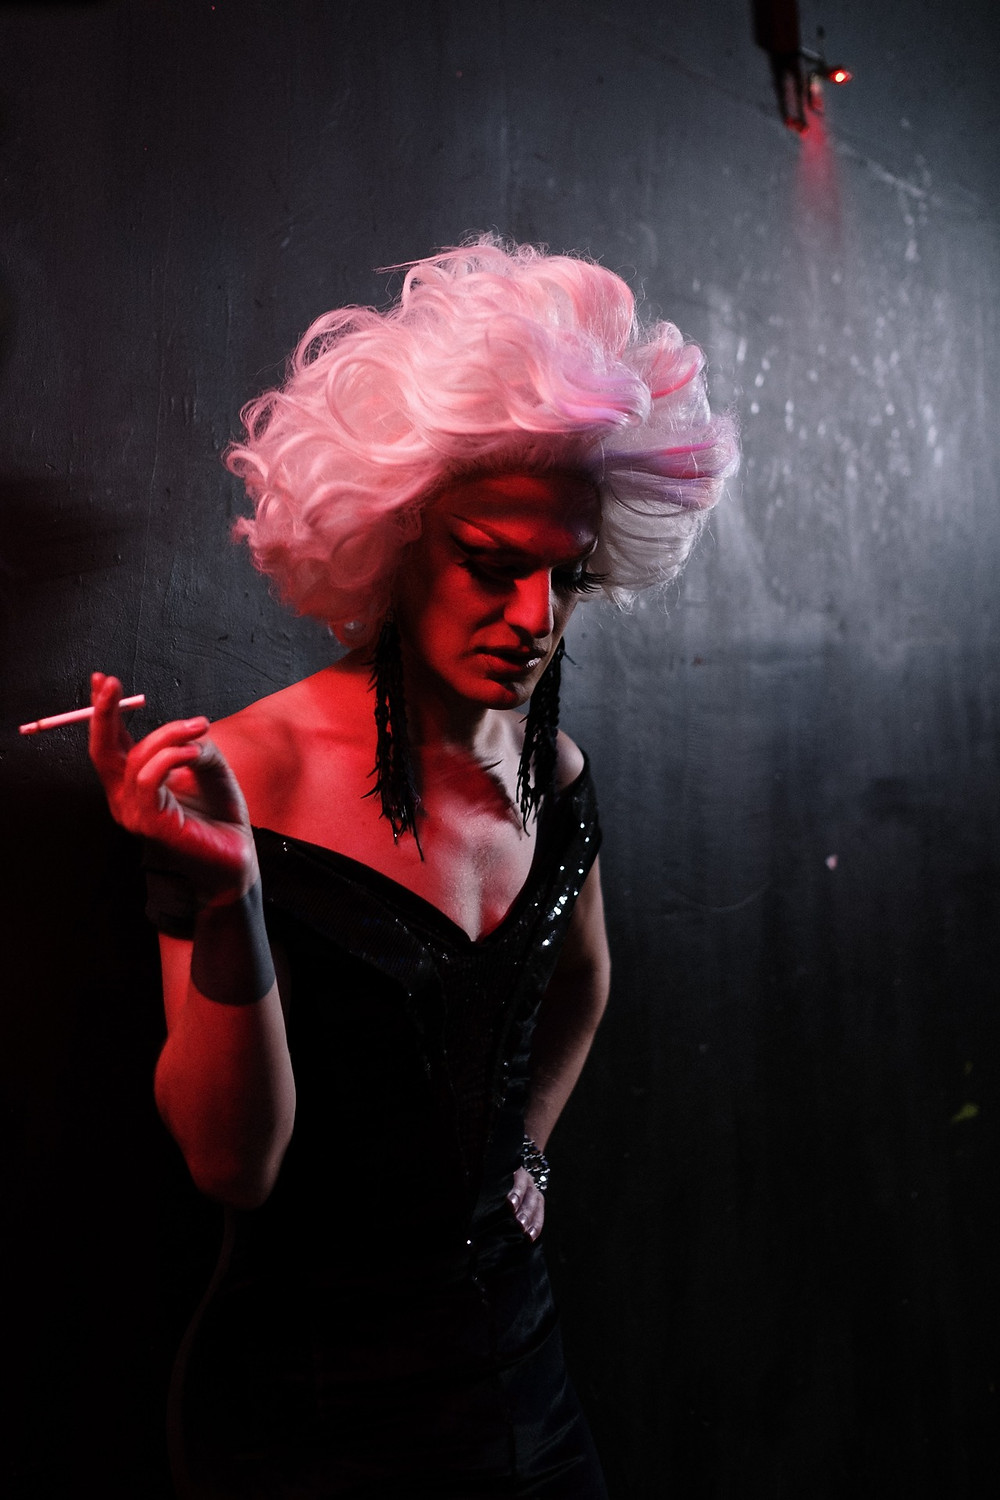 A drag queen with bright pink hair and long earrings smoking a cigarette with her hand on her hip wearing a black dress, lightly lit with a dark background.